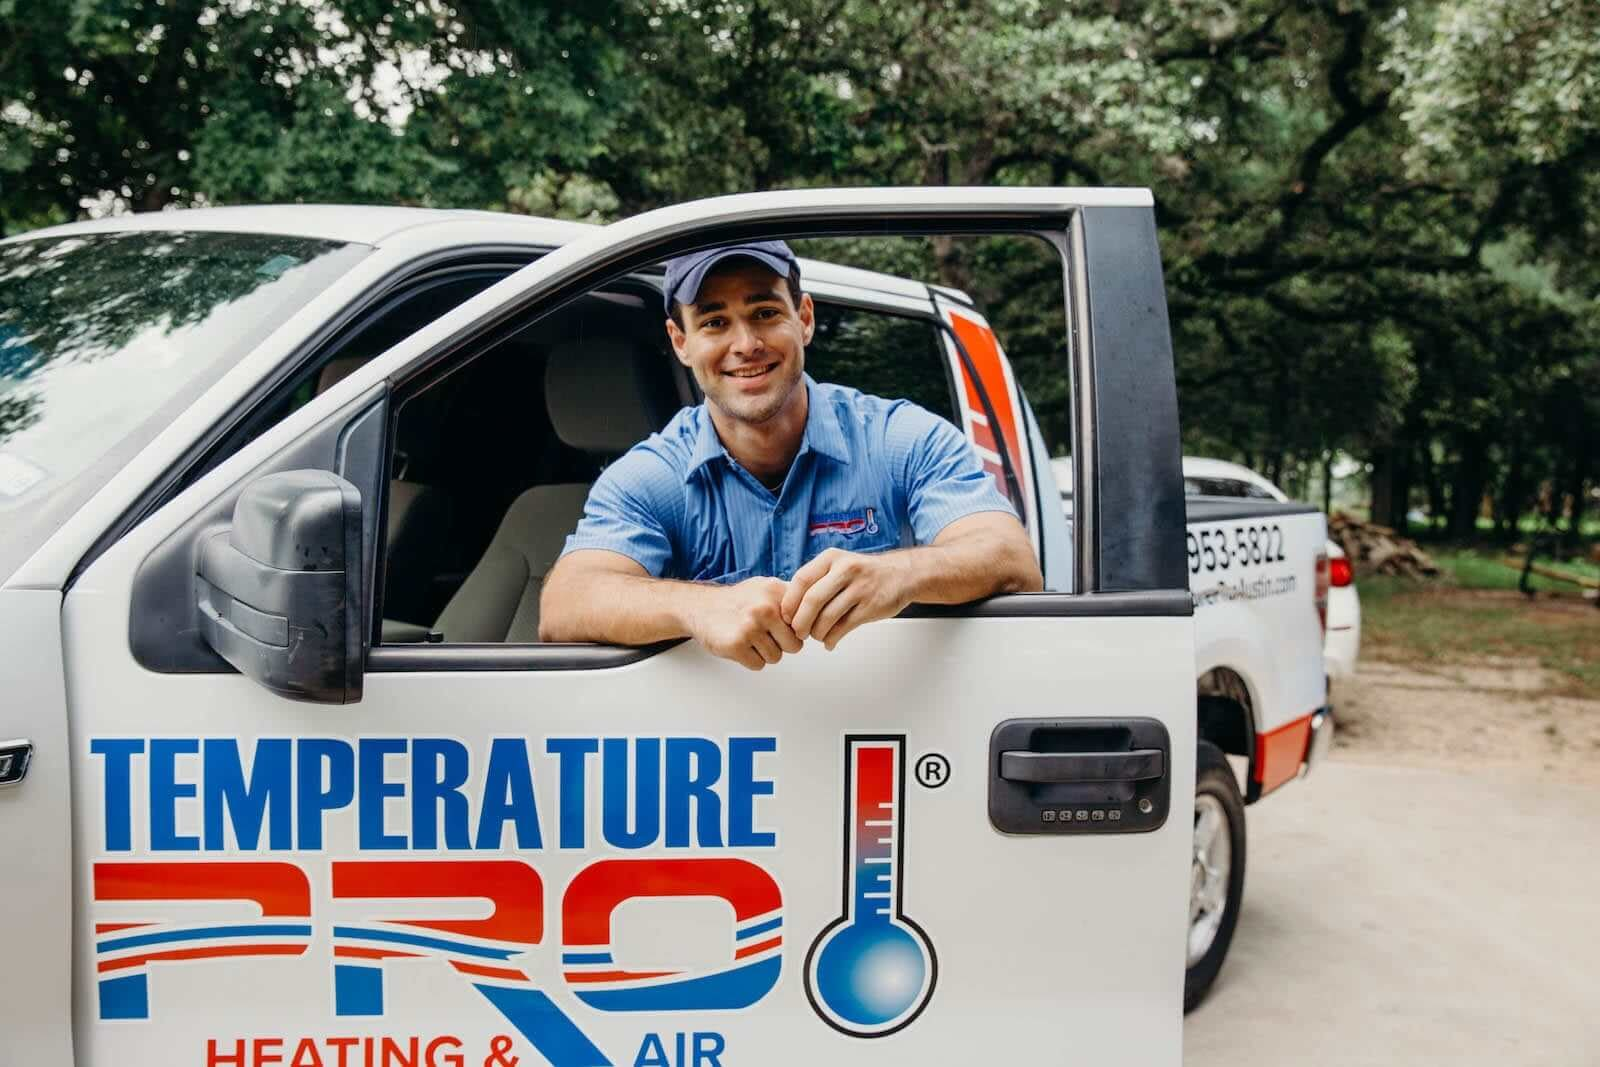 hvac technician standing with his truck